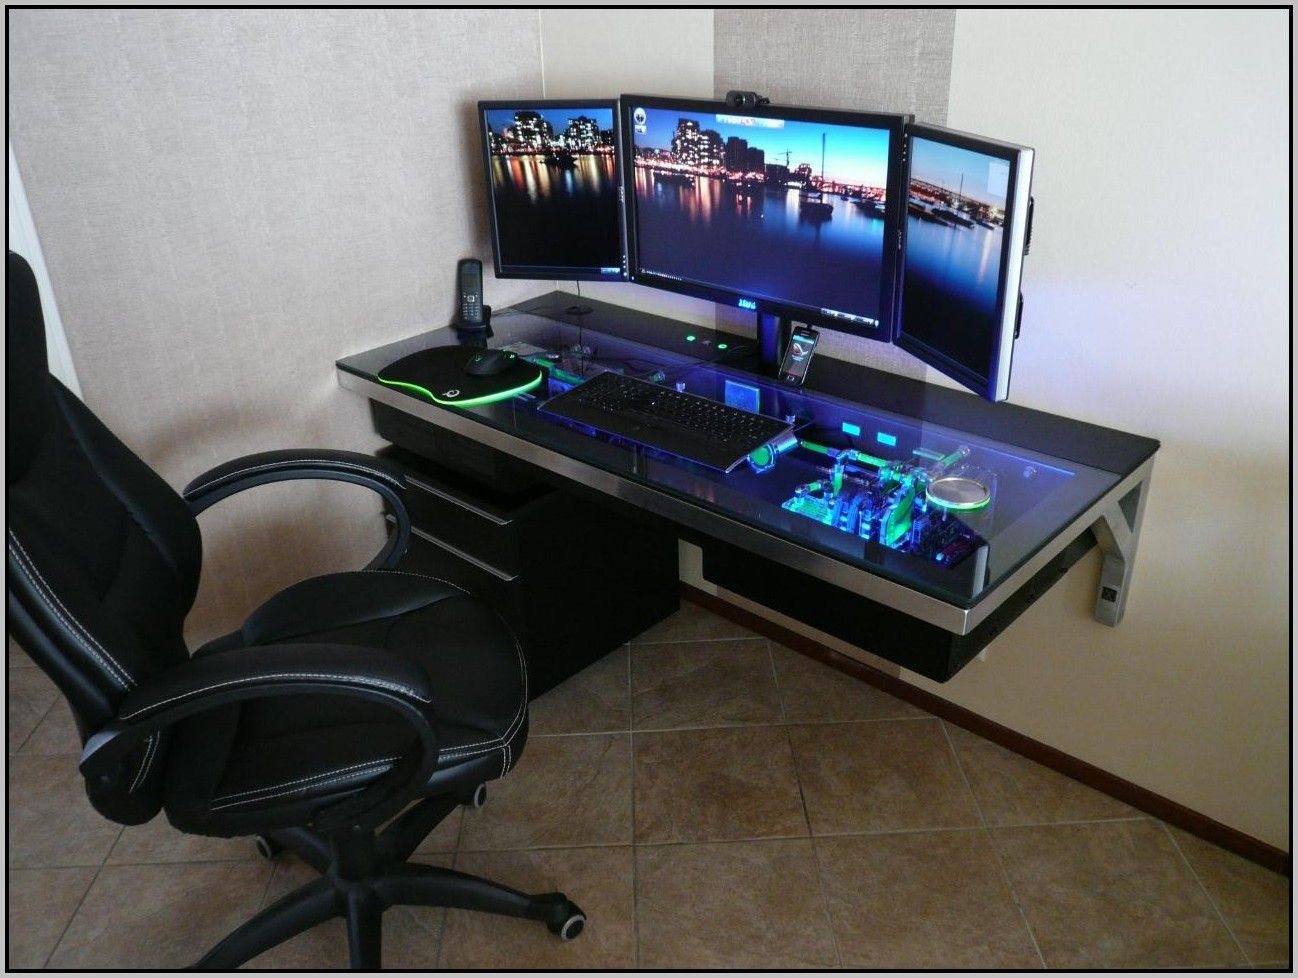 Best Gaming Desks 2015 Small Computer Desk Gaming Desk Good Gaming Desk